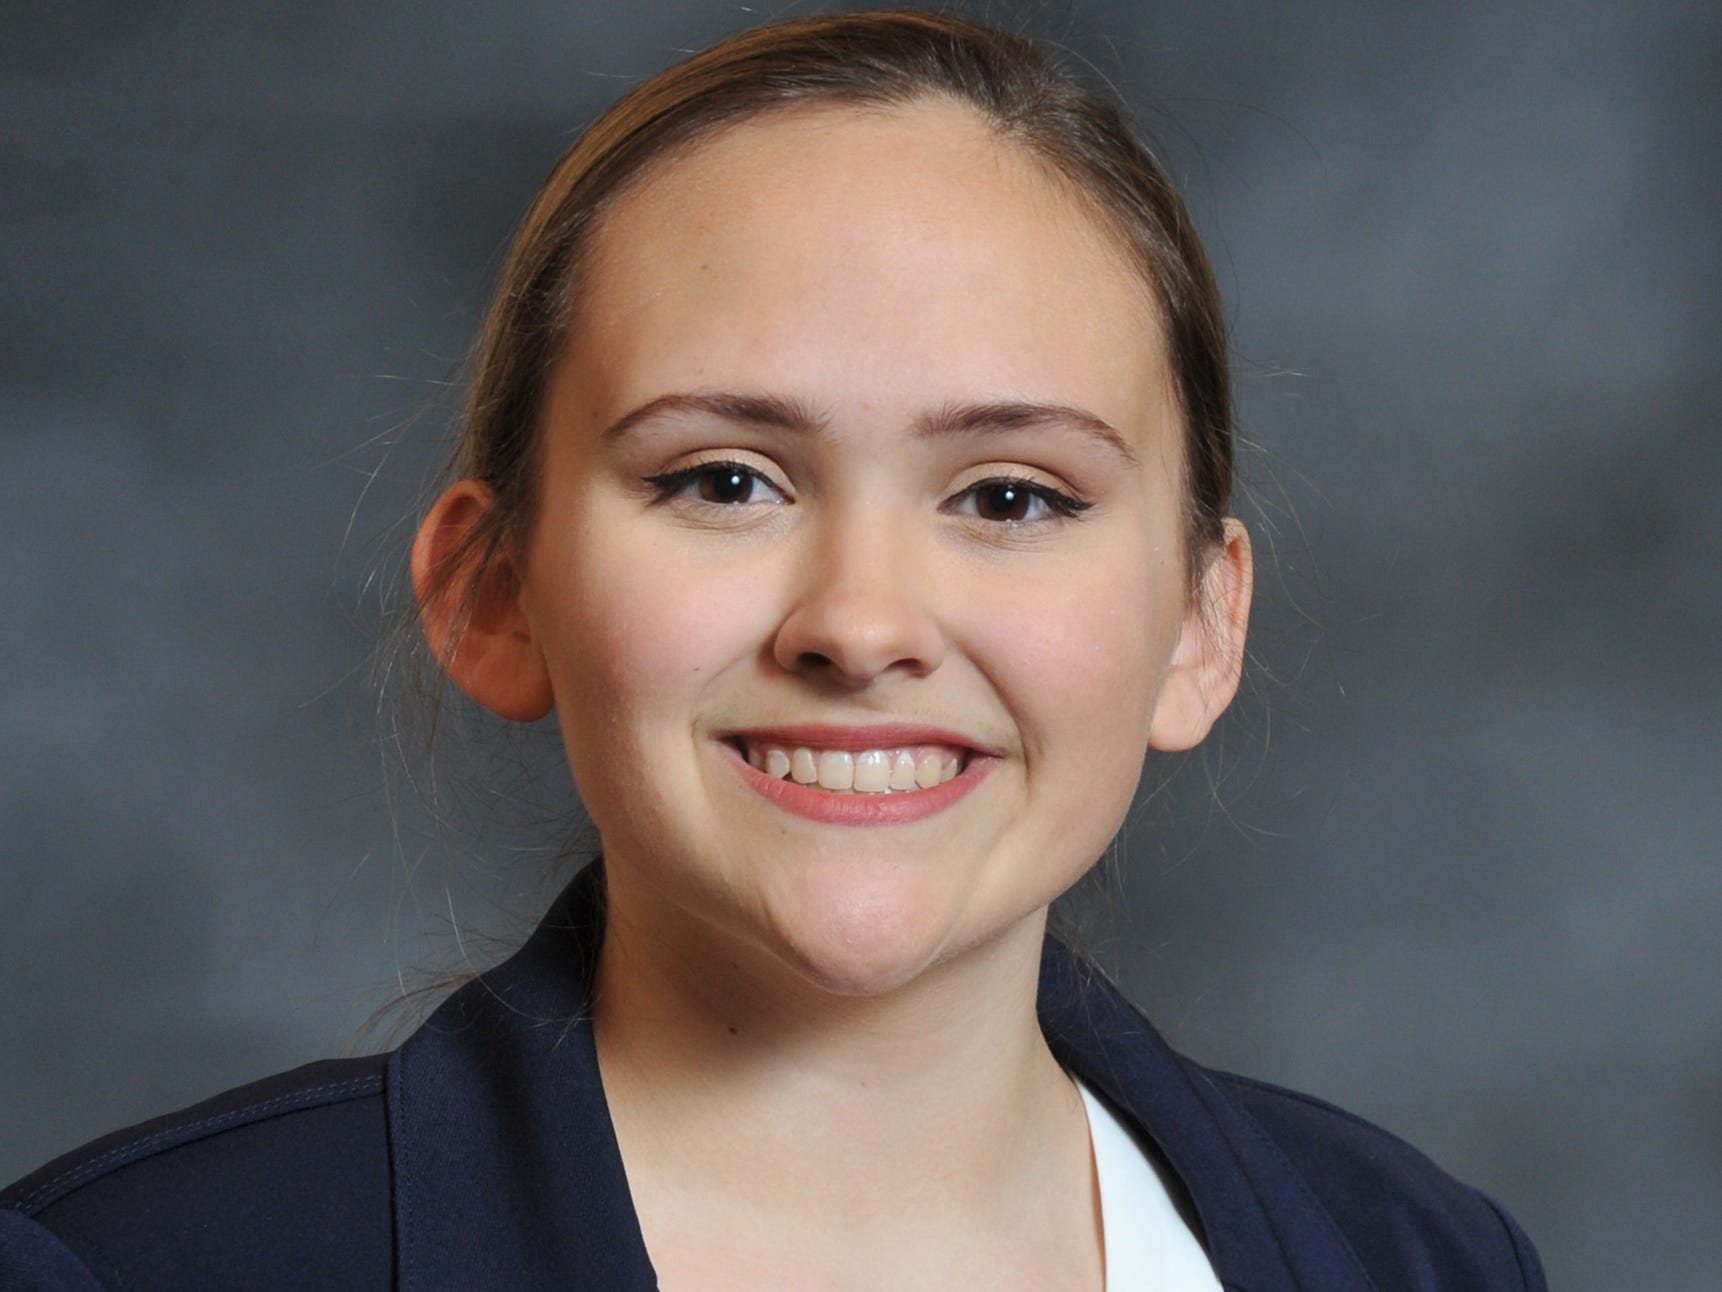 Sophia Andia, Eastern York High School, Distinguished Young Women of York County participant.